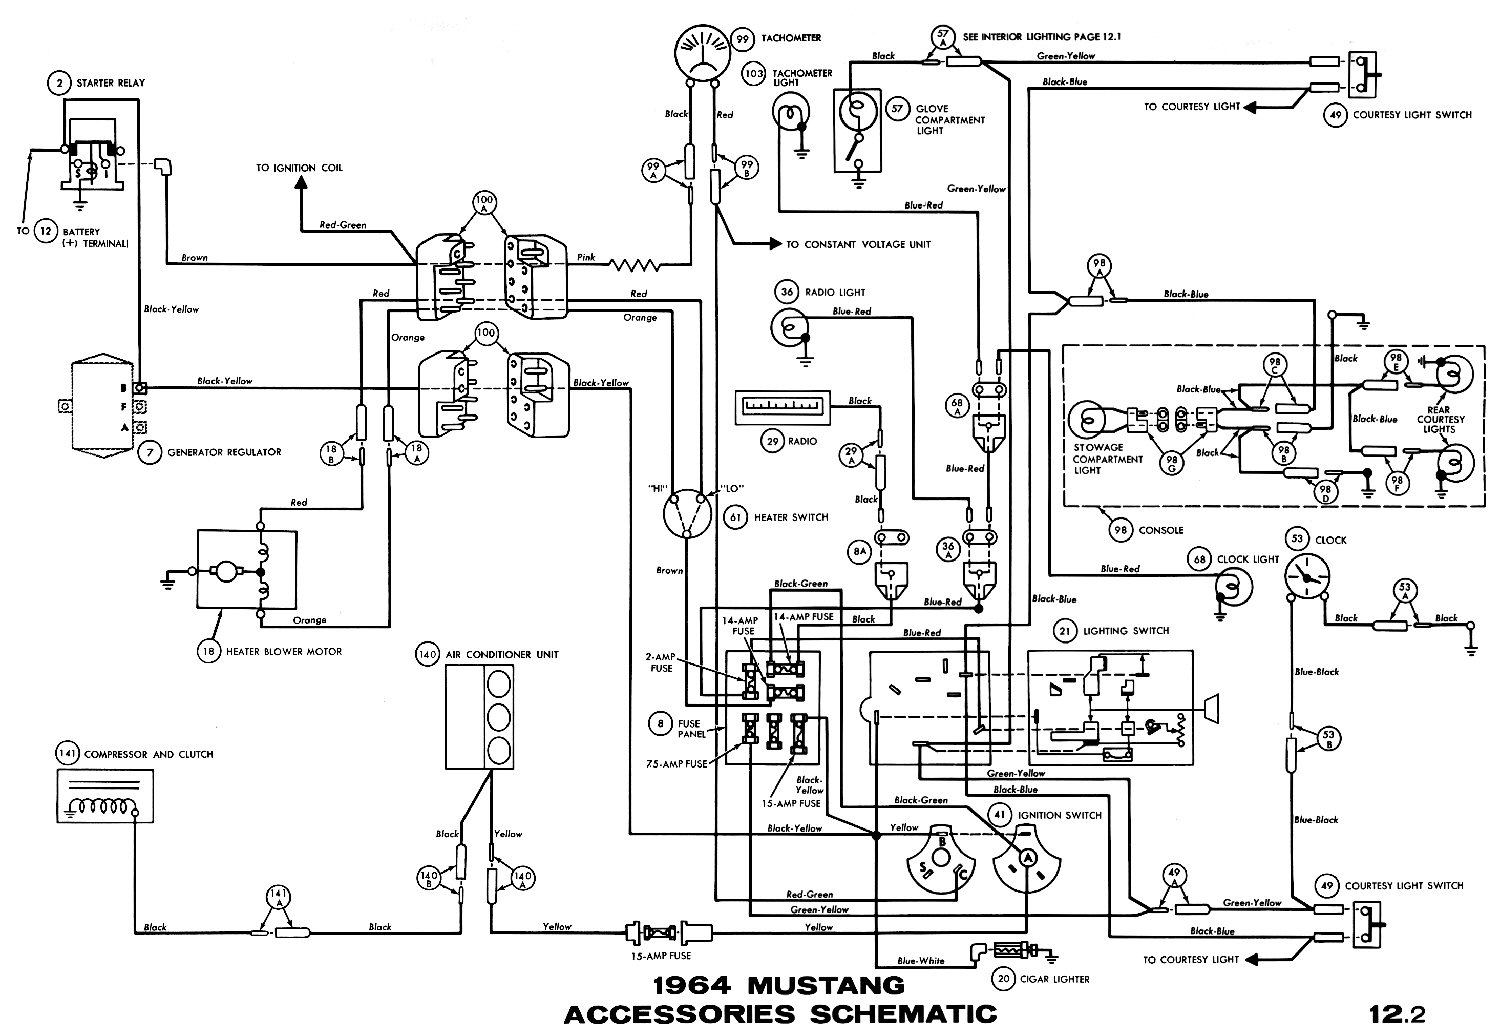 1964m 2015 mustang wiring diagram schematic mustang 2015 \u2022 free wiring 1965 ford mustang wiring diagrams at mifinder.co